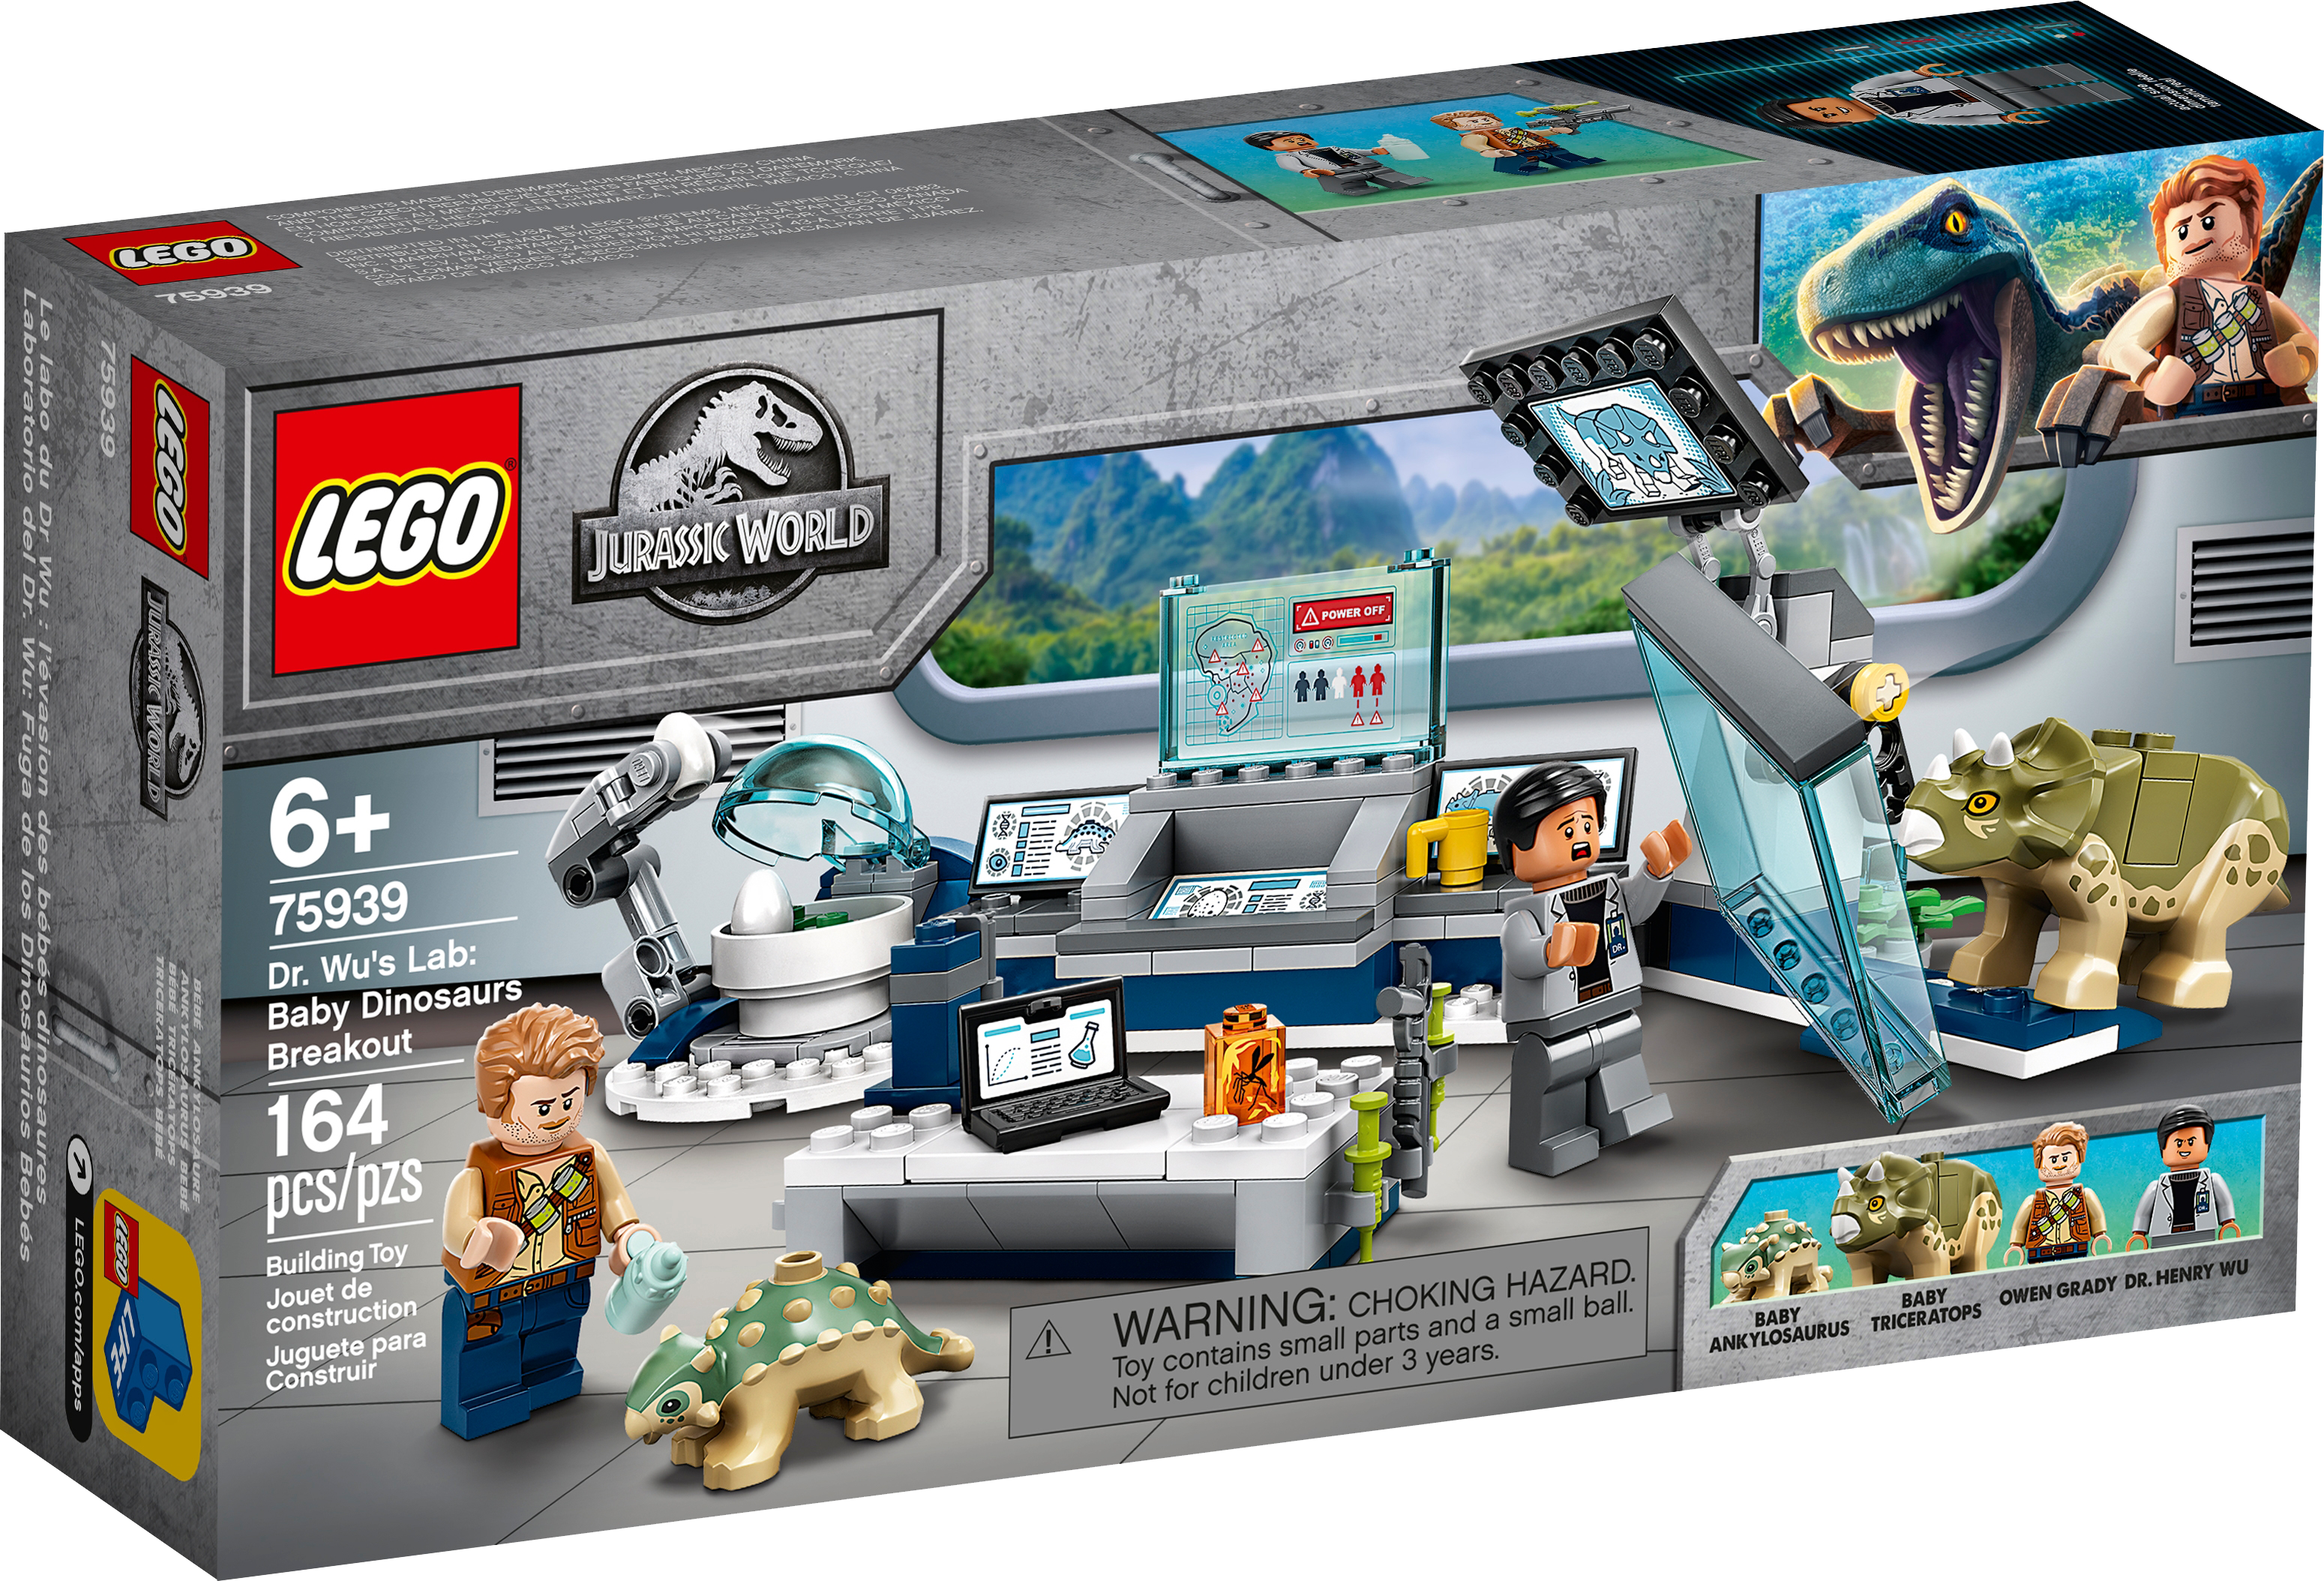 Jurassic World Dr Wus Lab